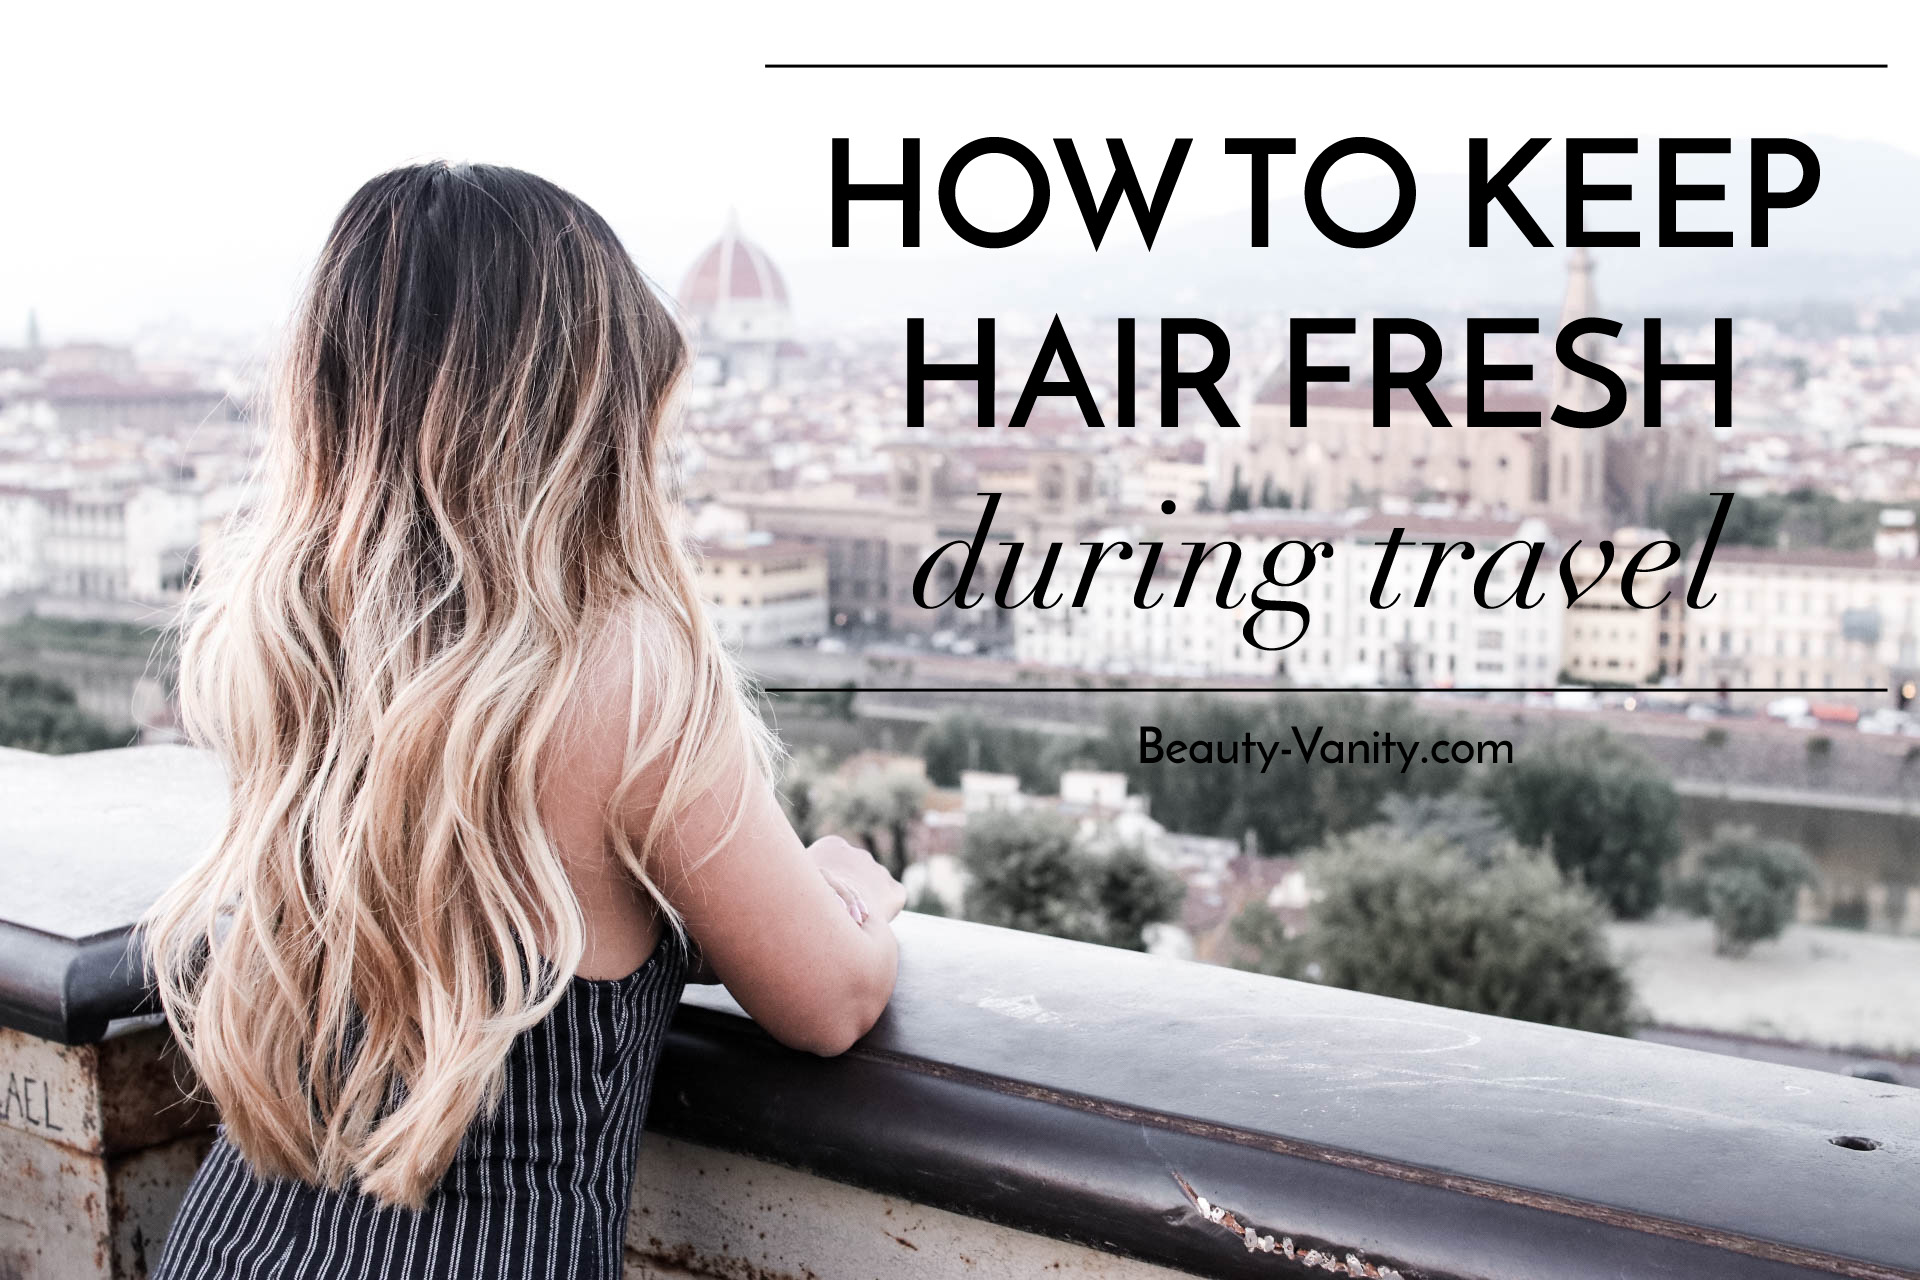 How to keep hair fresh during travel | The Beauty Vanity